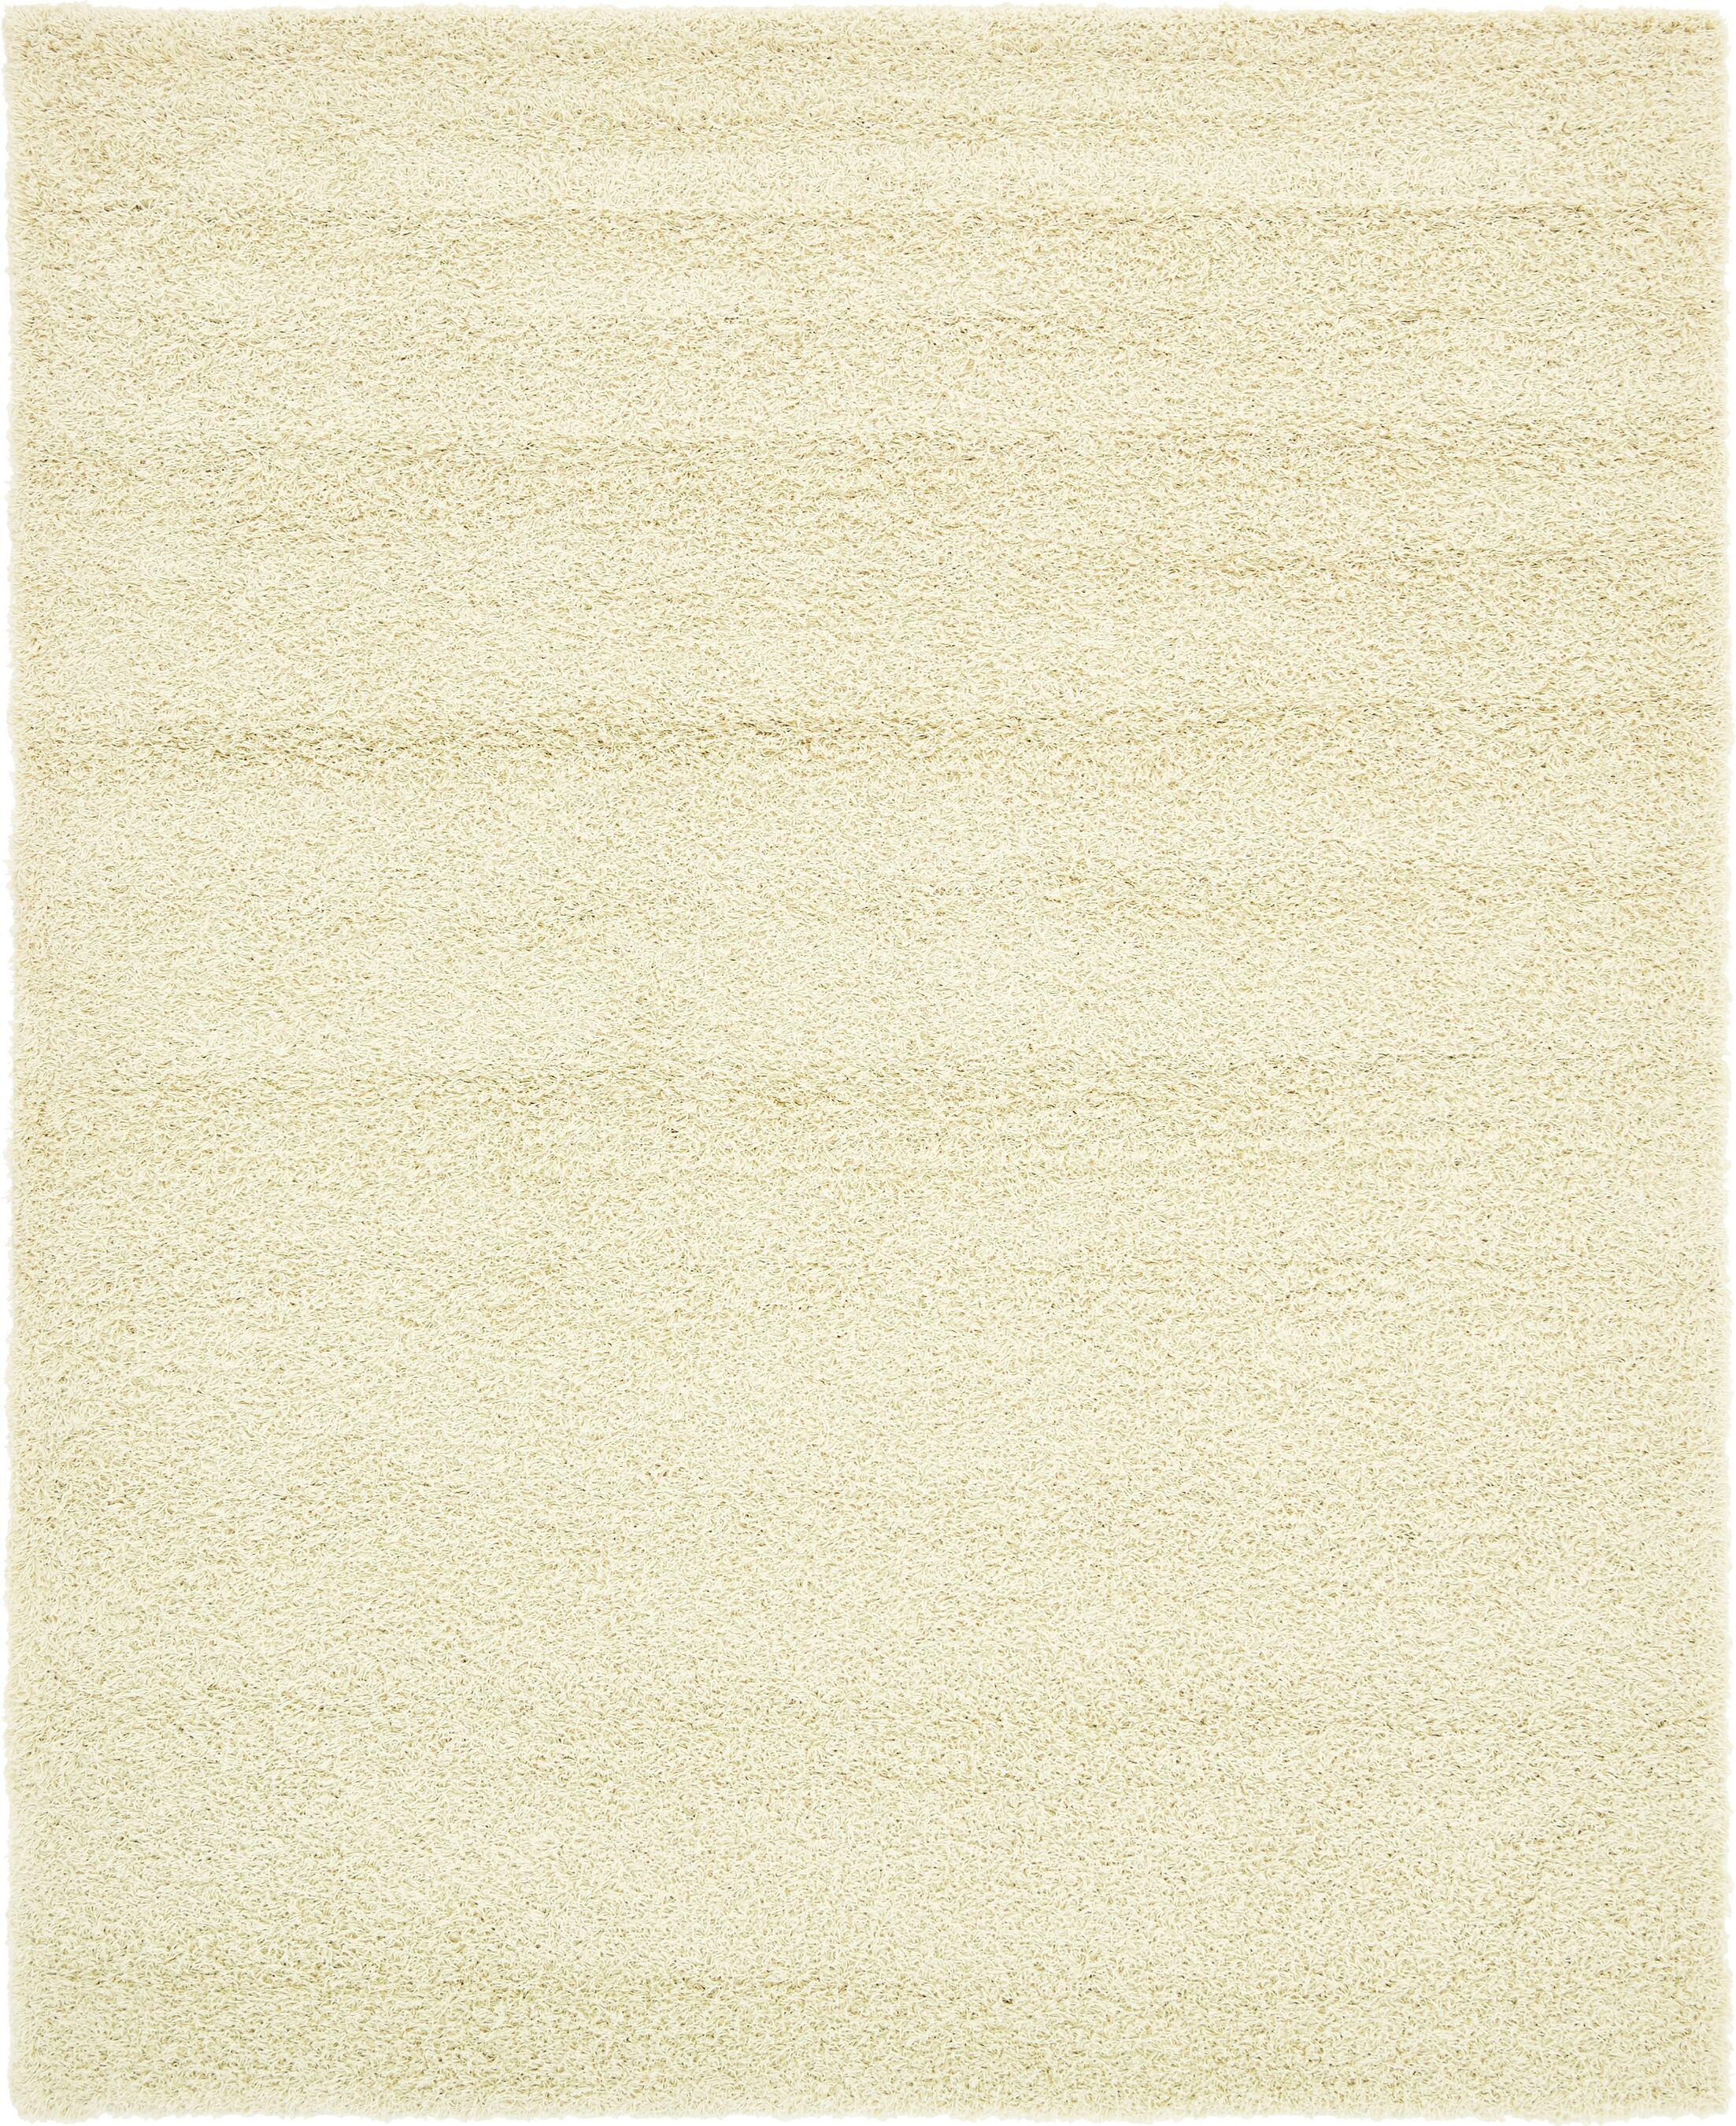 Lilah Pure Ivory Area Rug Rug Size: Rectangle 8' x 10'